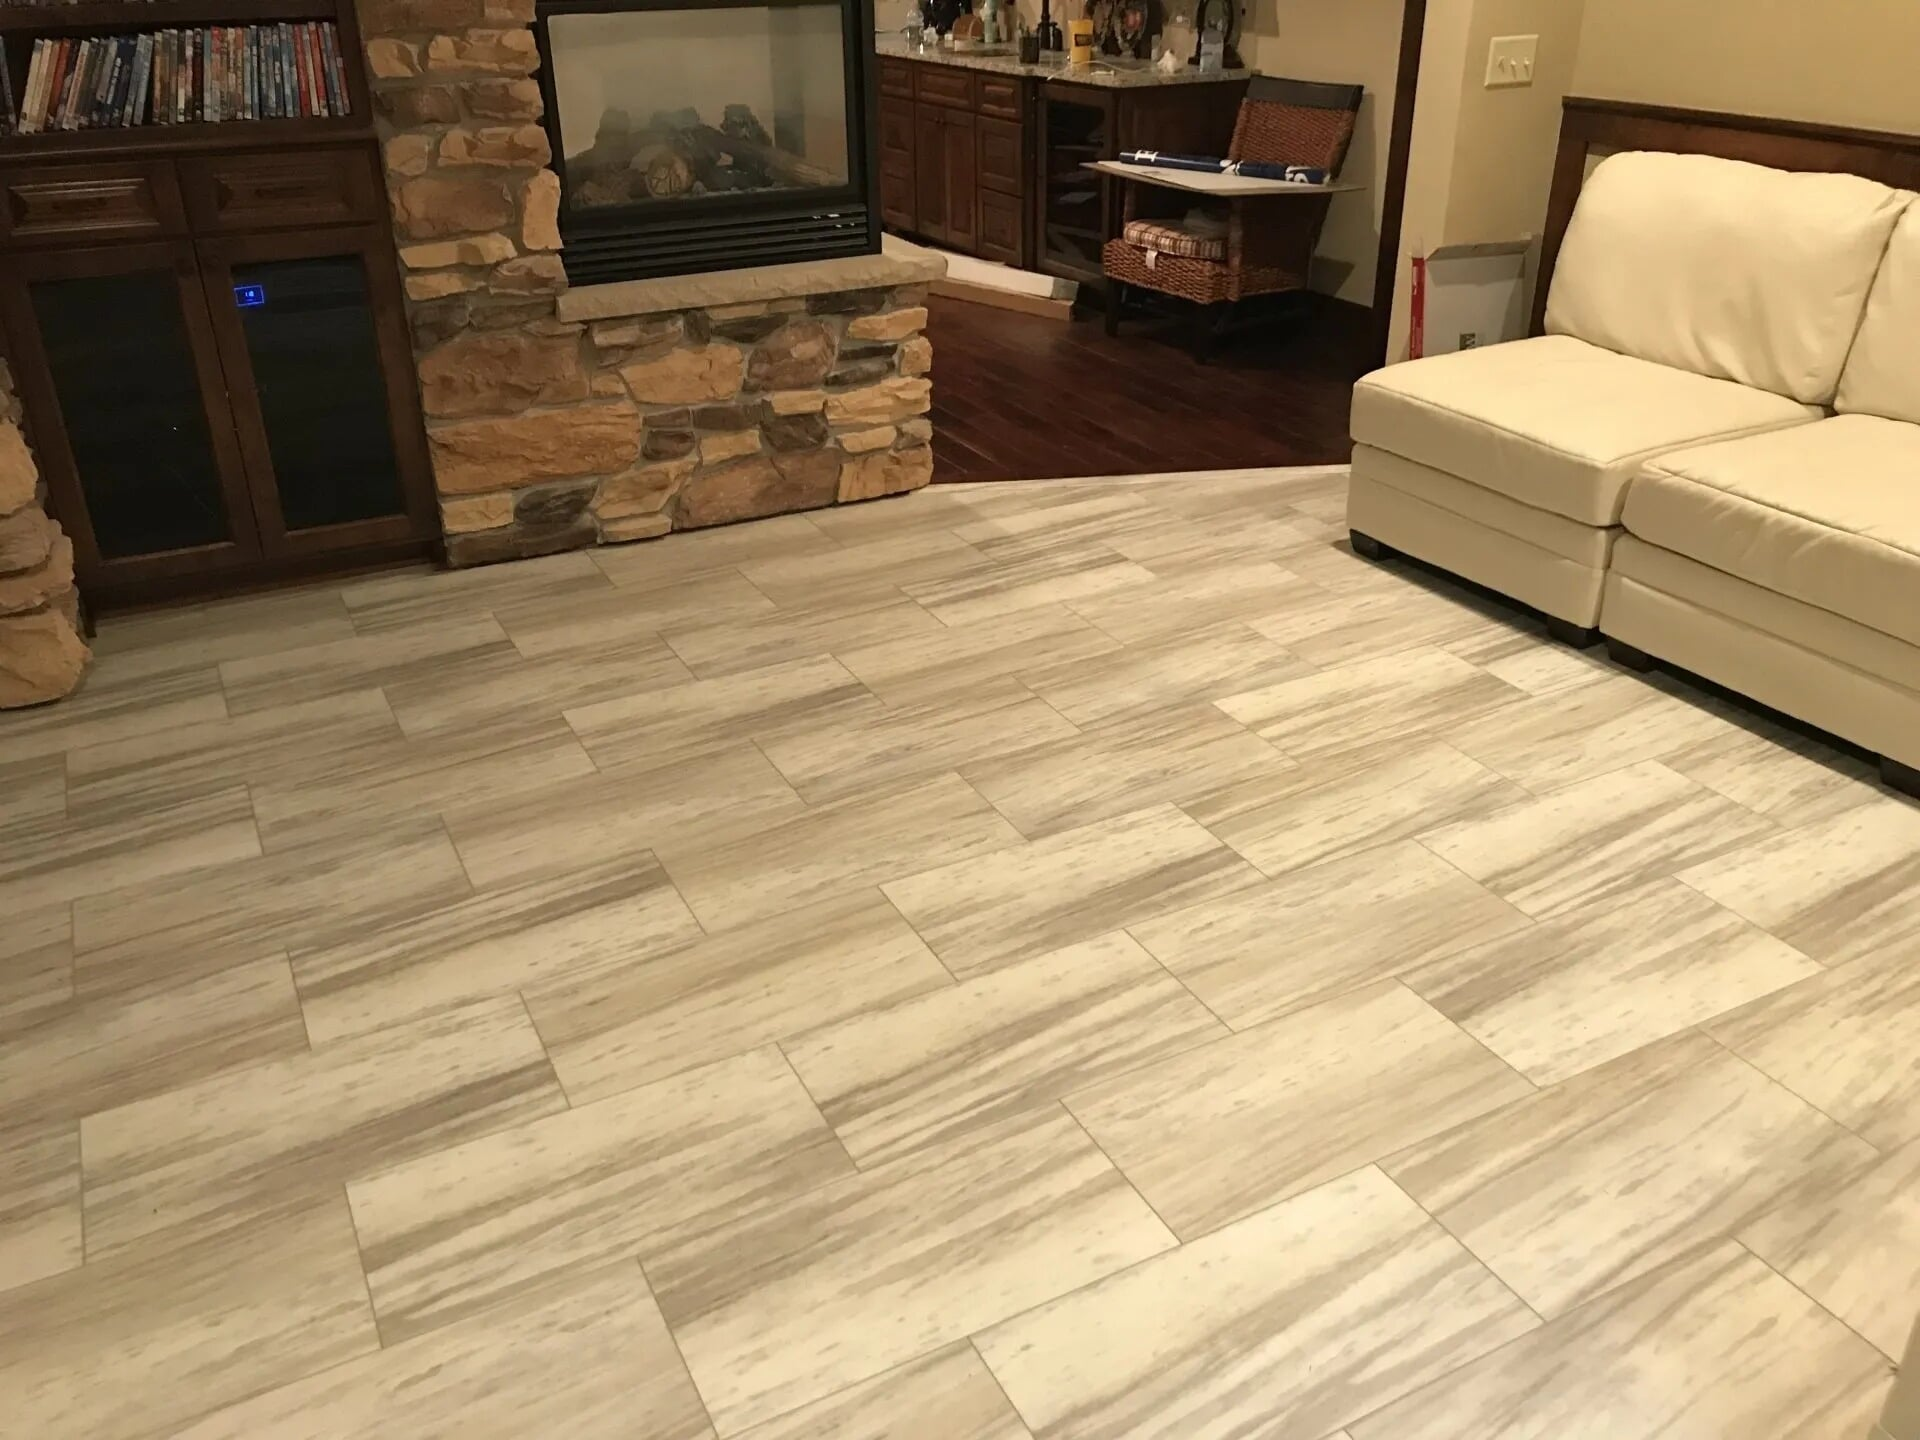 Vinyl tile living room flooring in Prior Lake, MN from Infinite Floors and More